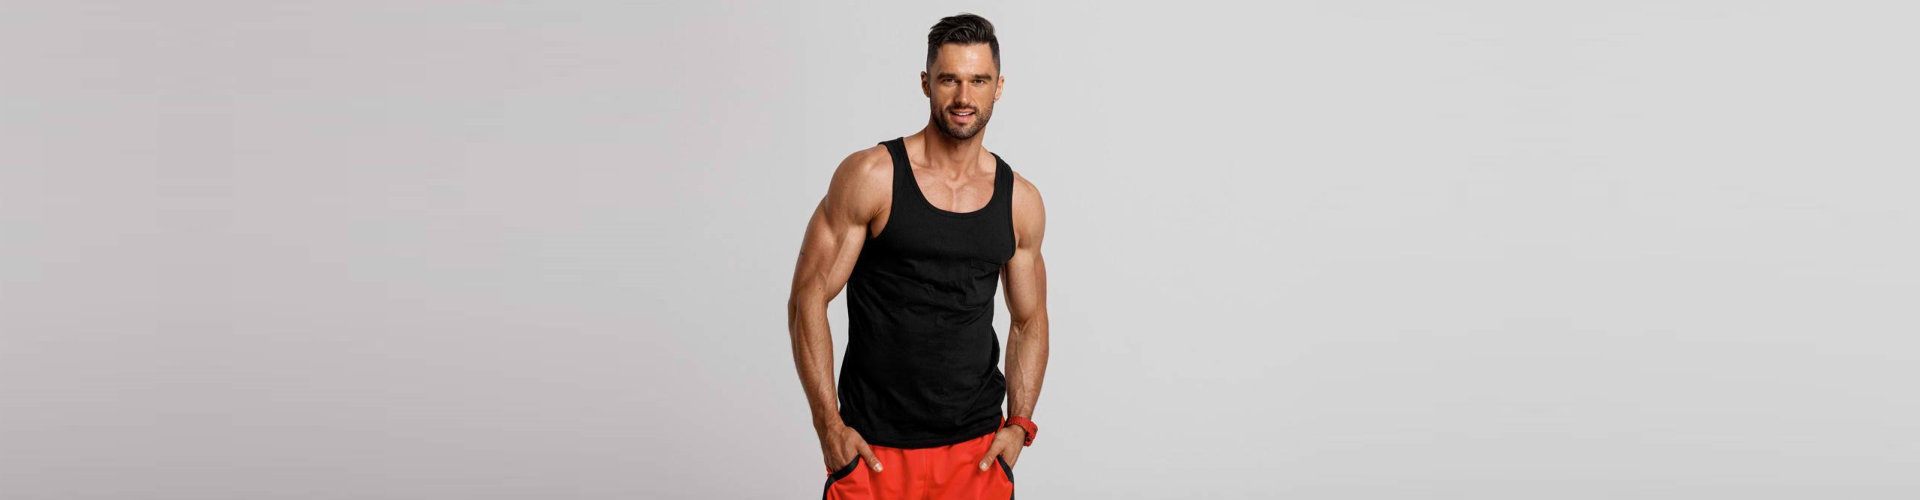 fit and healthy man